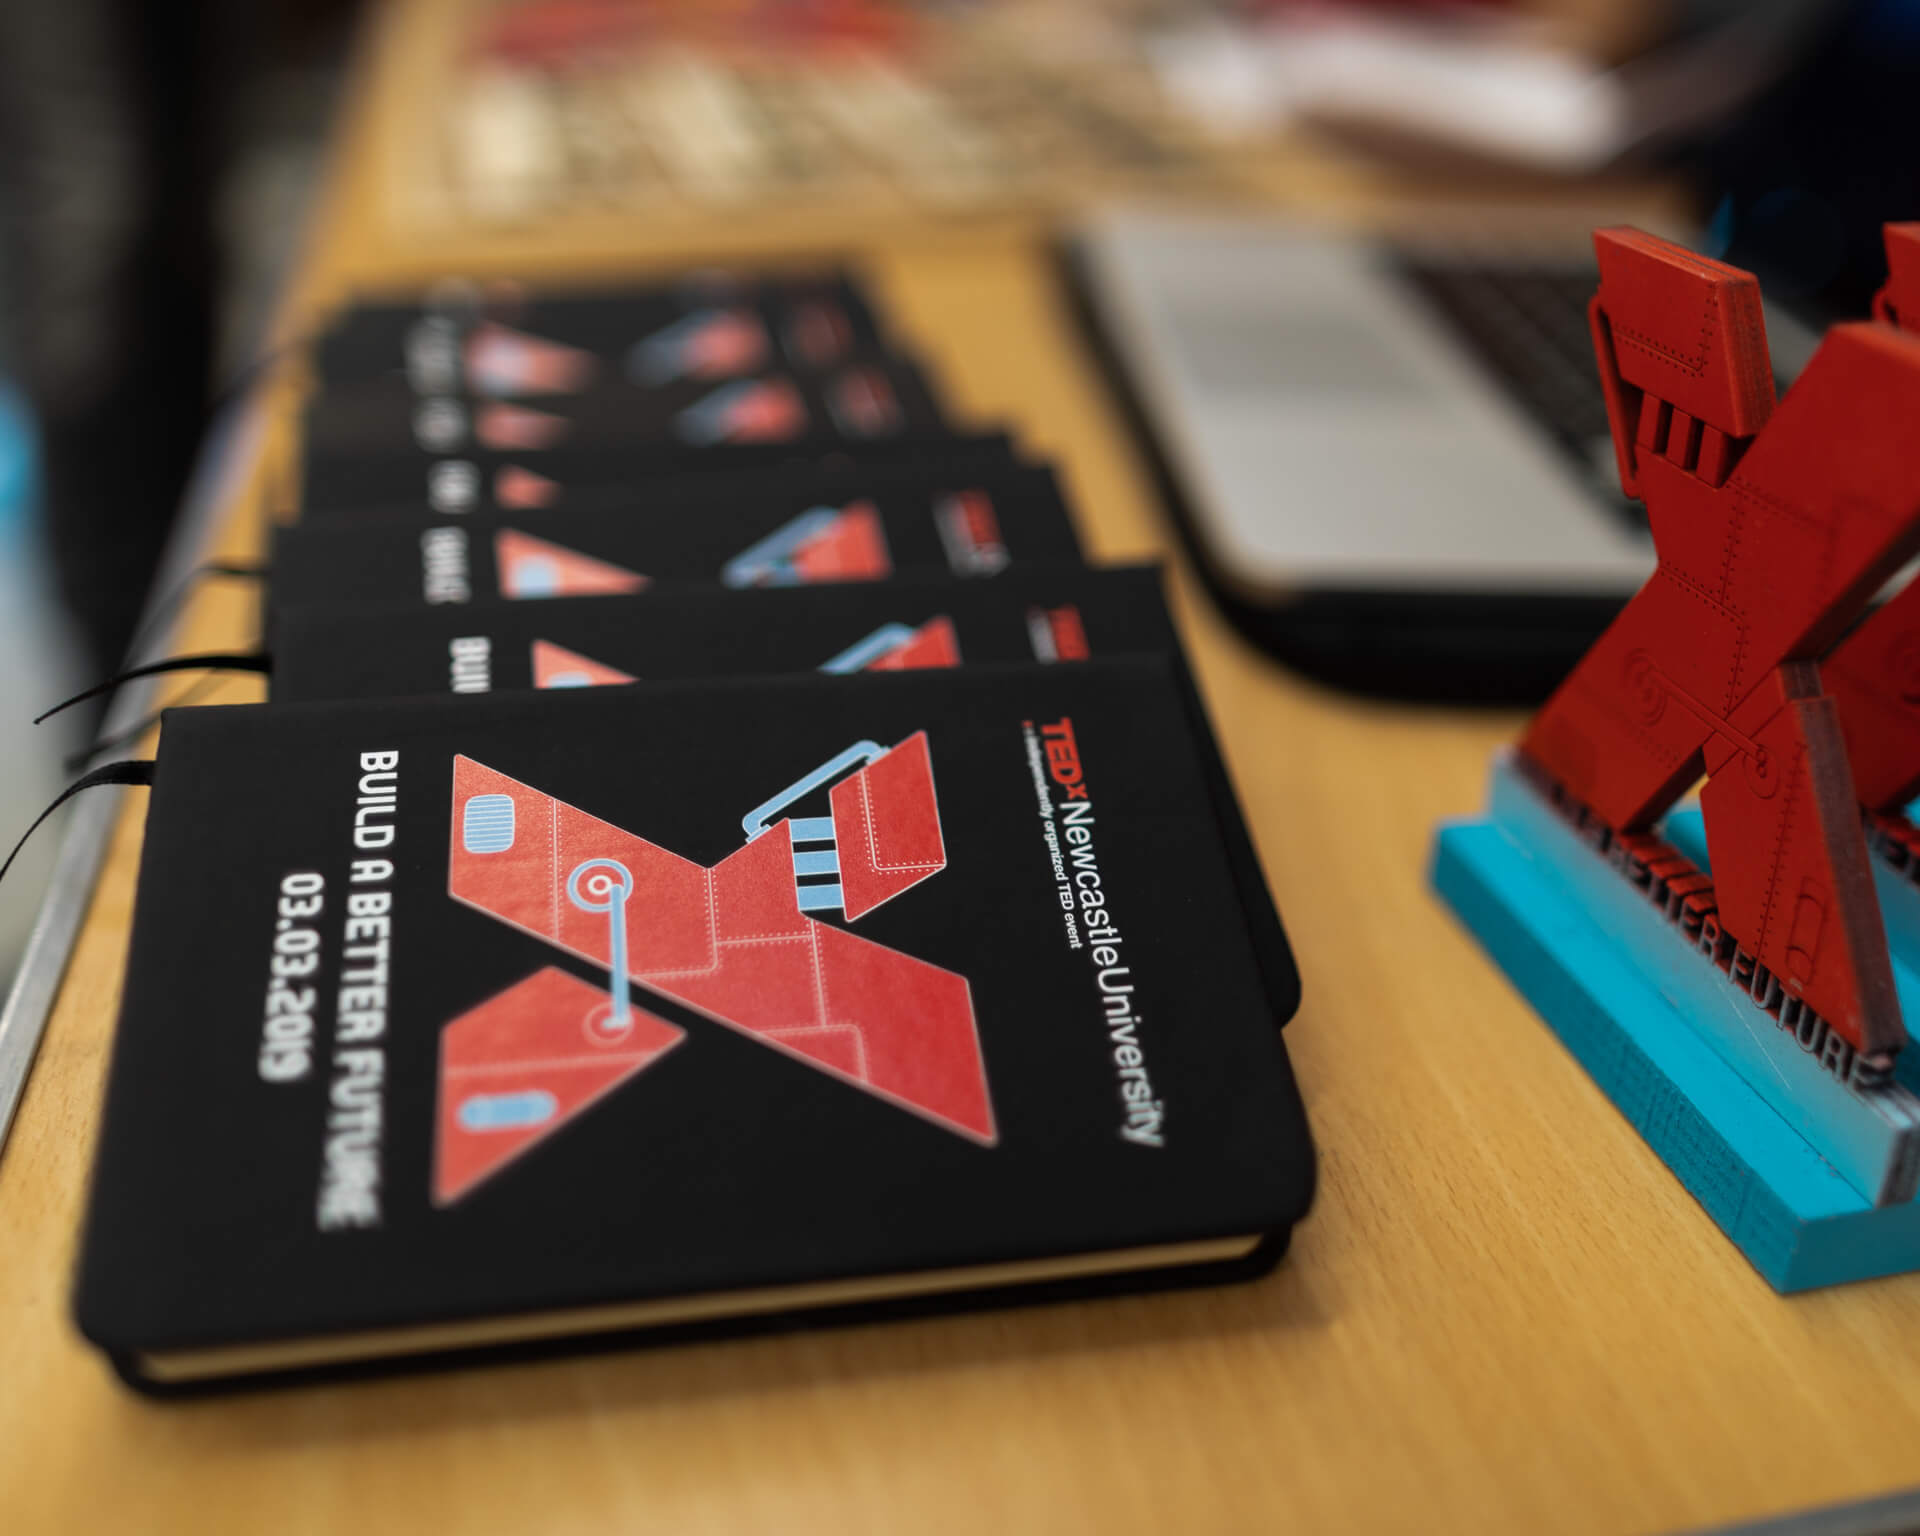 THAT Branding Company - Ethical Creative Design and Branding Agency in Newcastle Gateshead and Durham created the Notebooks used in the conference.